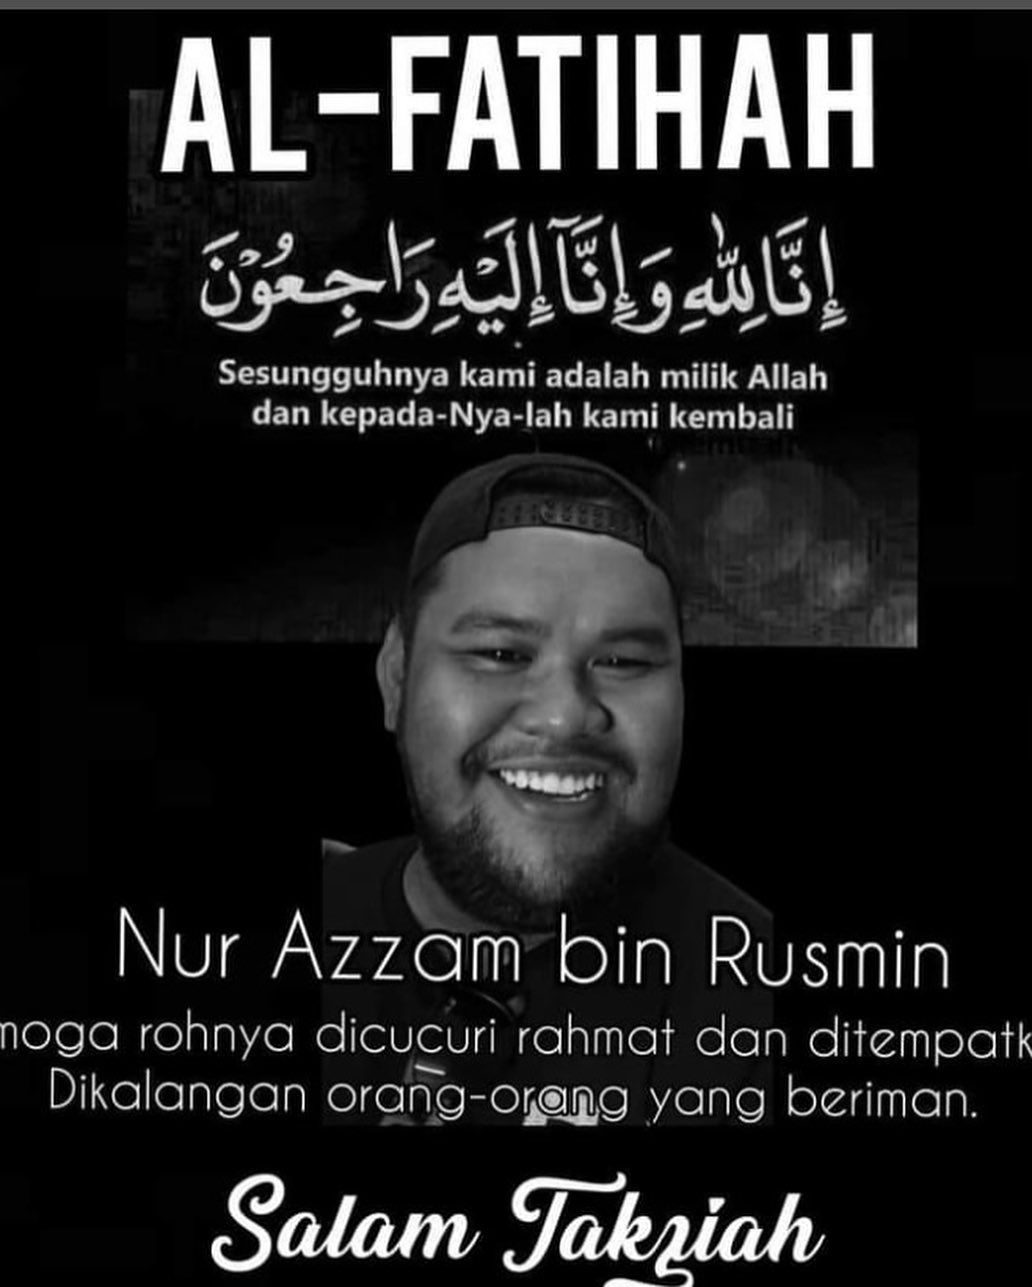 Condolence message for Nur Azzam Bin Rusmin. He is pictured as a round-faced jovial man with a wide smile. He is wearing a cap backwards.